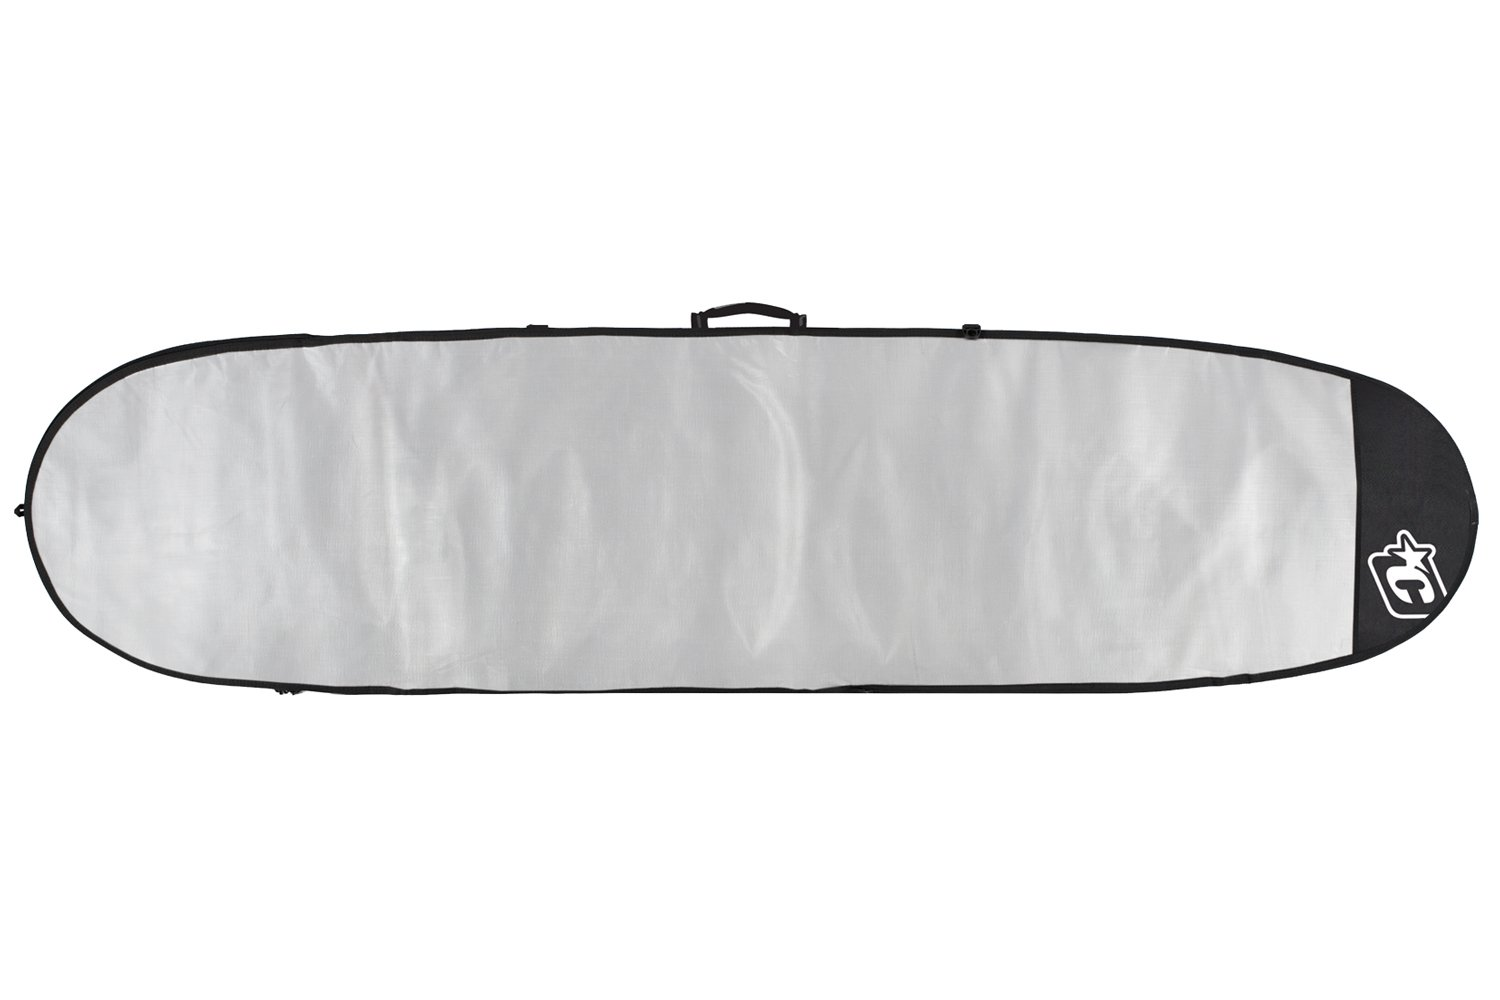 Creatures of Leisure SUP Lite Bag